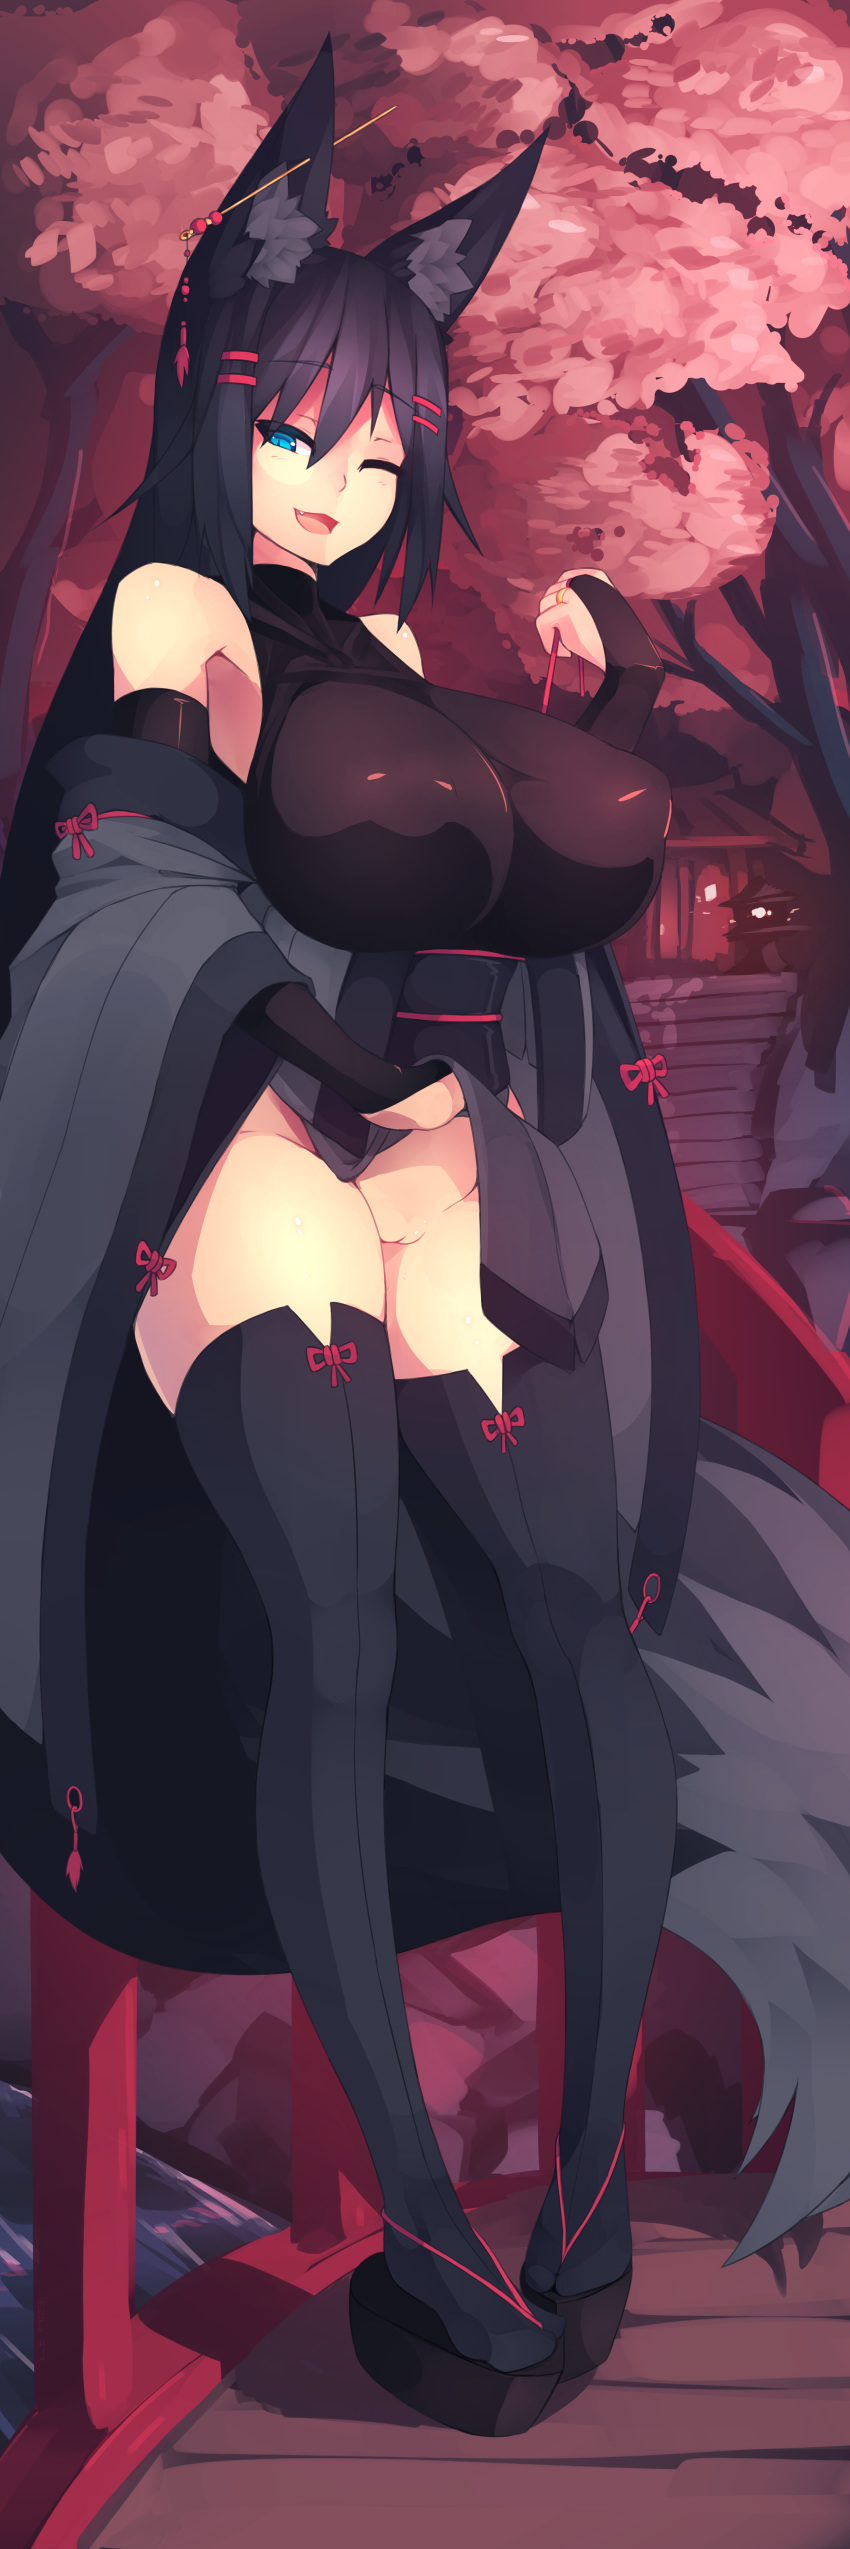 re ripuka death quest end Star vs the forces of evil porn pic